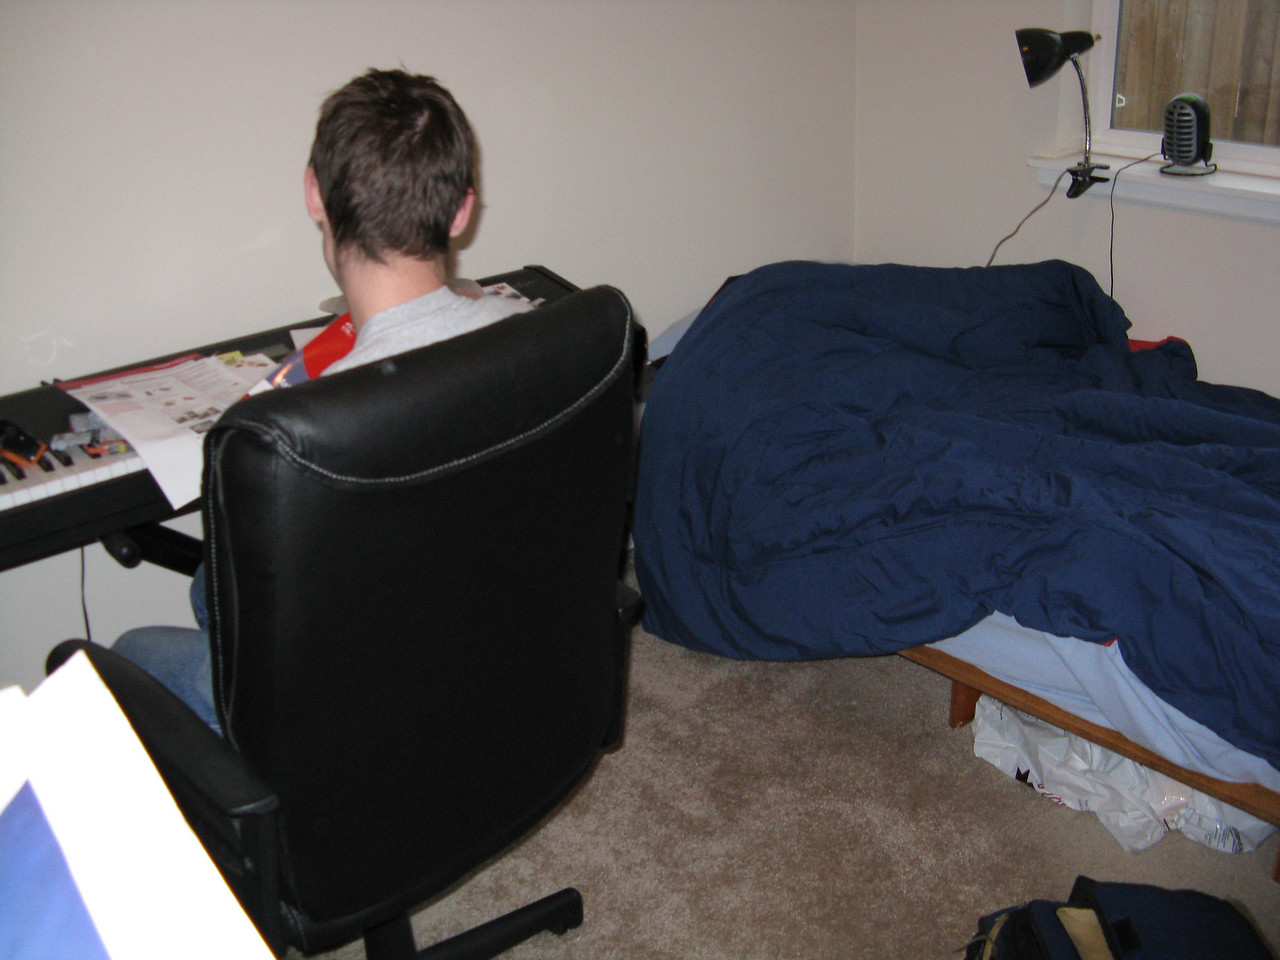 Kevin at his keyboard with his bed in the background.